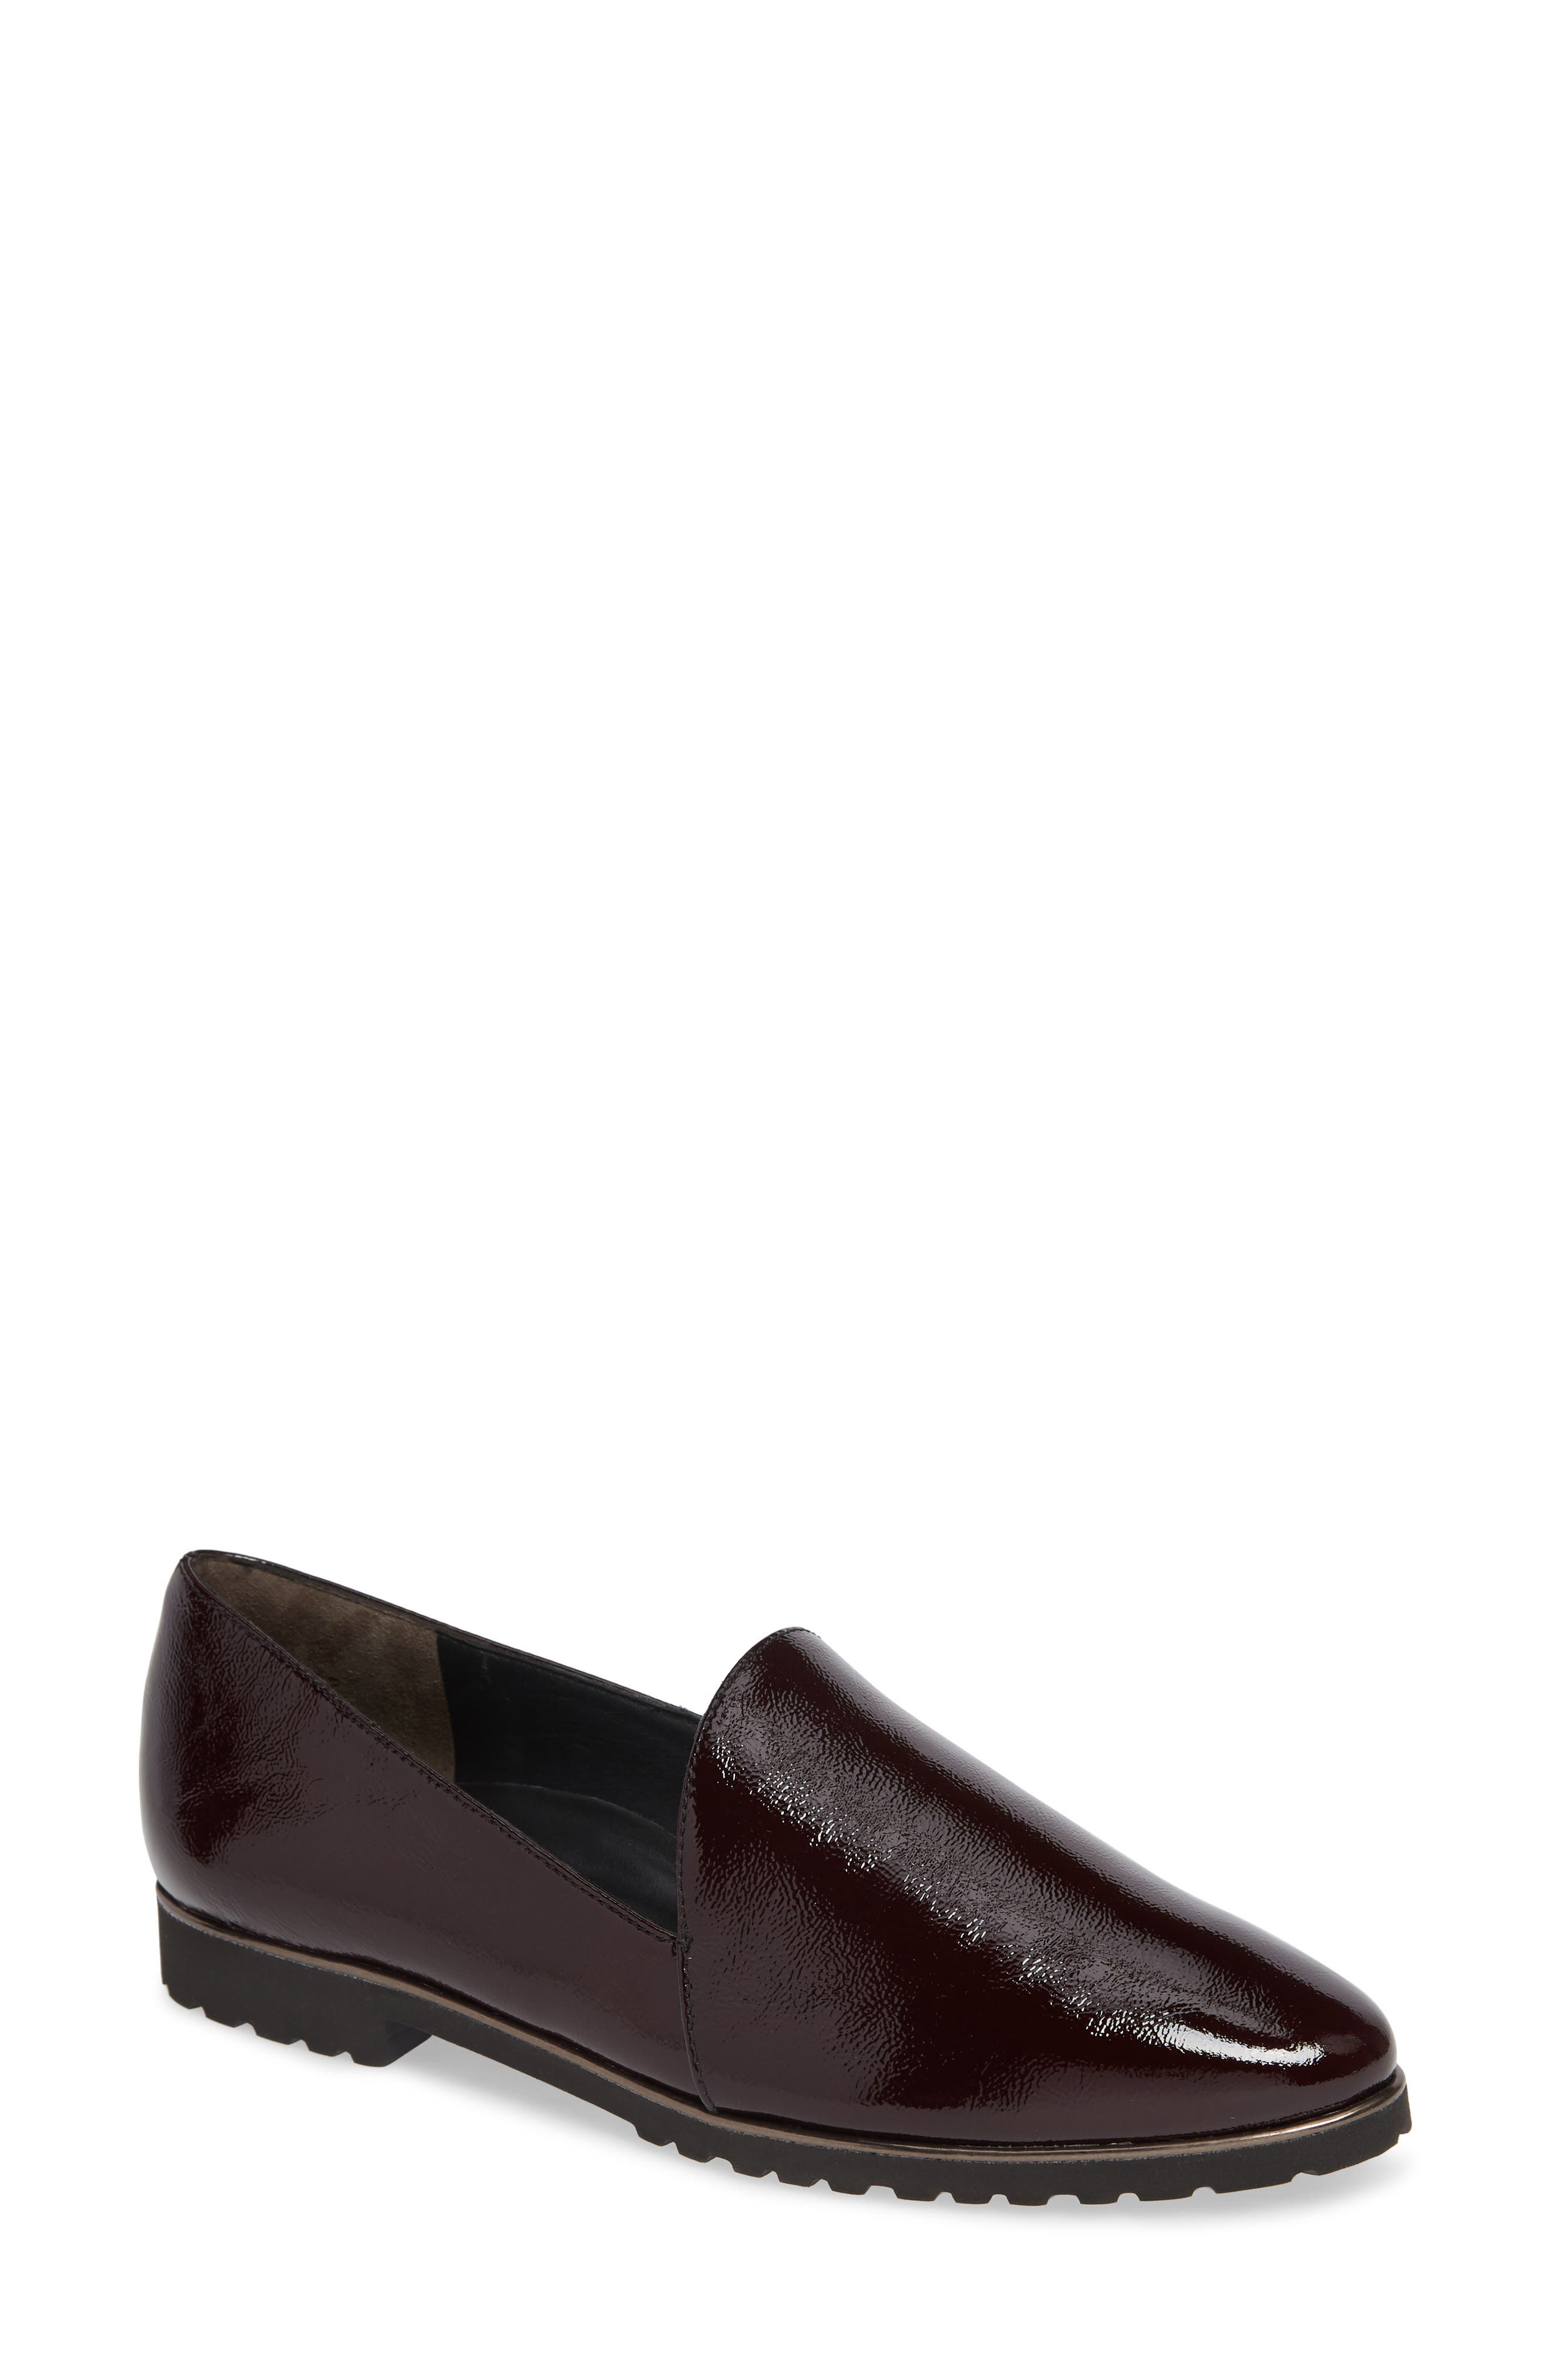 Paul Green Uptown Loafer, US / 4.5UK - Red